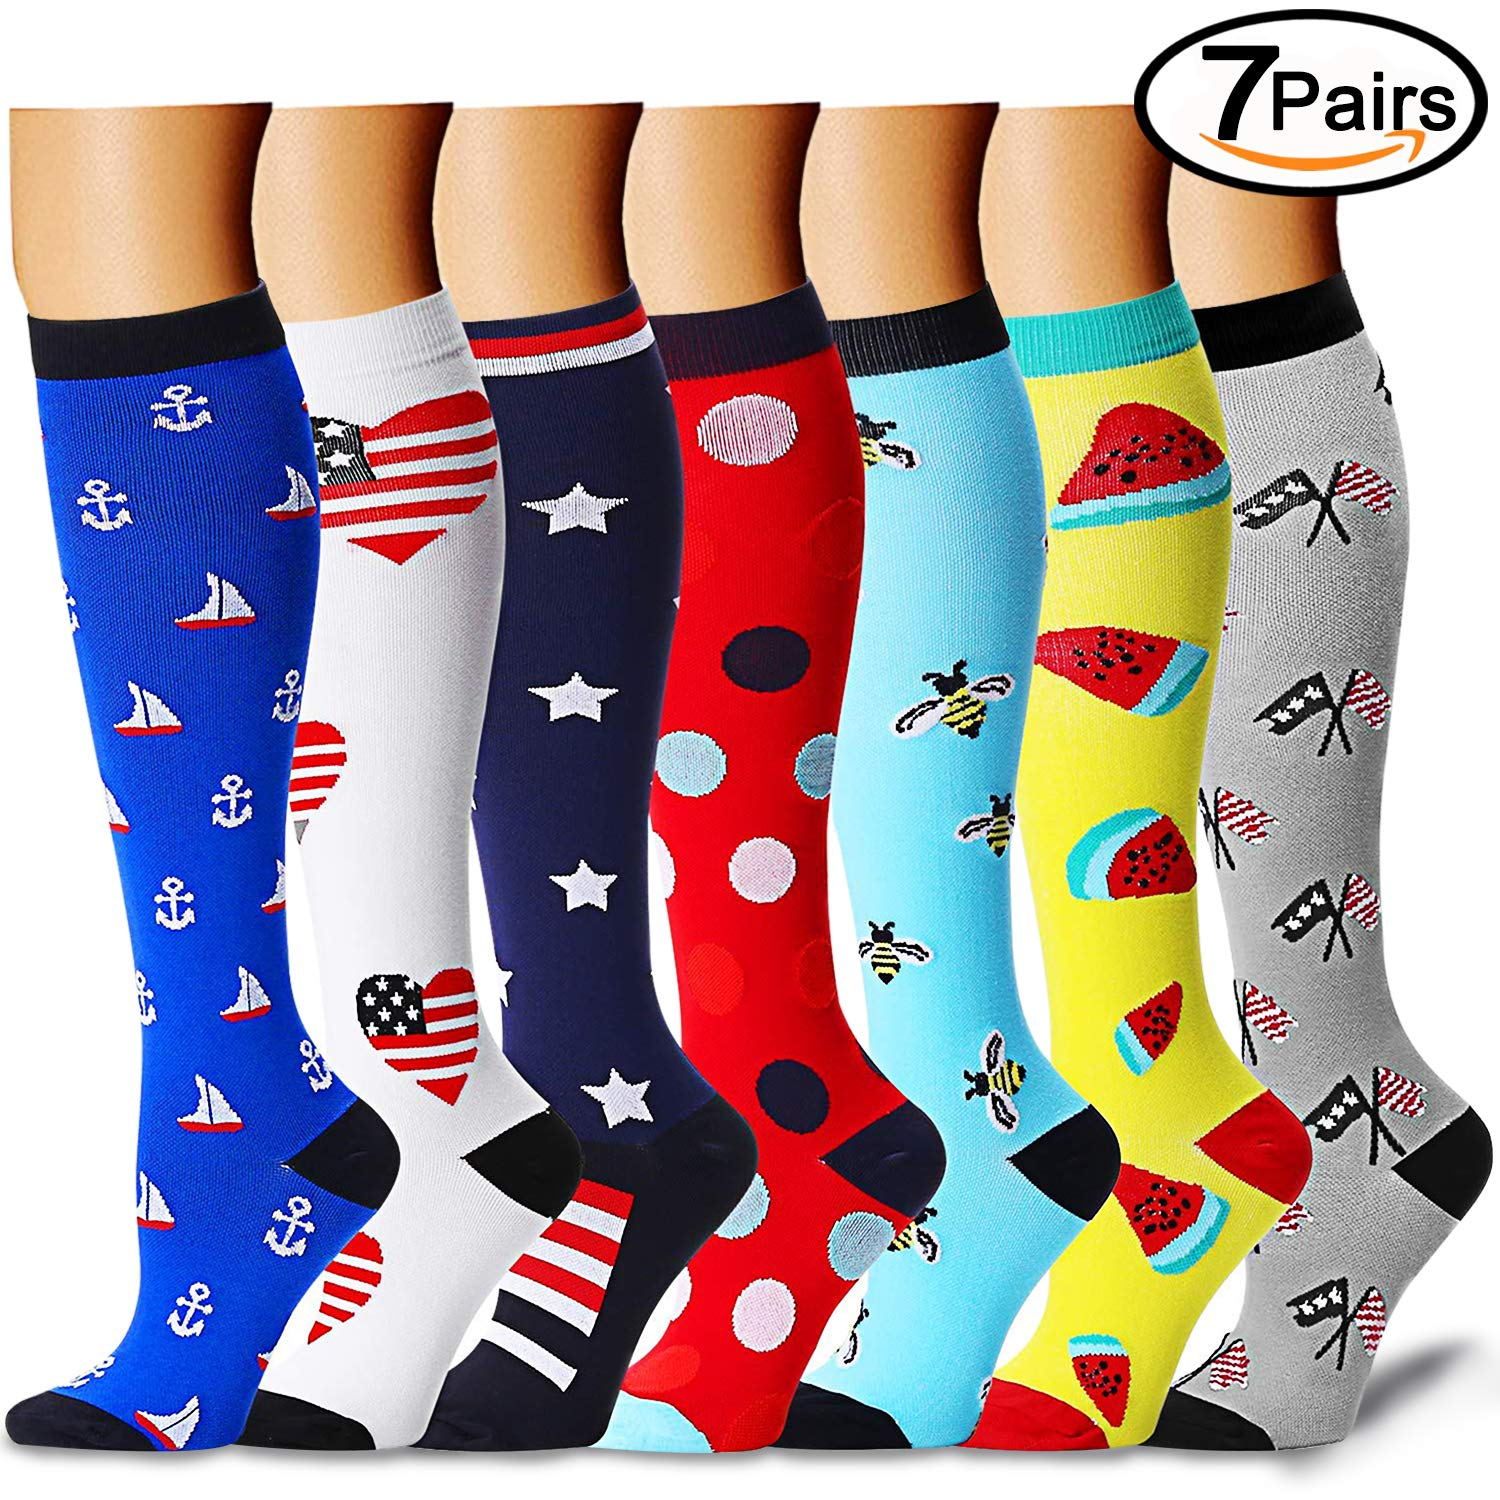 Compression Socks (7 Pairs)15-20 mmhg is BEST Graduated Athletic & Medical for Men & Women, Running, Travel, Nurses, Pregnant - Boost Performance, Blood Circulation & Recovey(Small/Medium, Assorted 5)